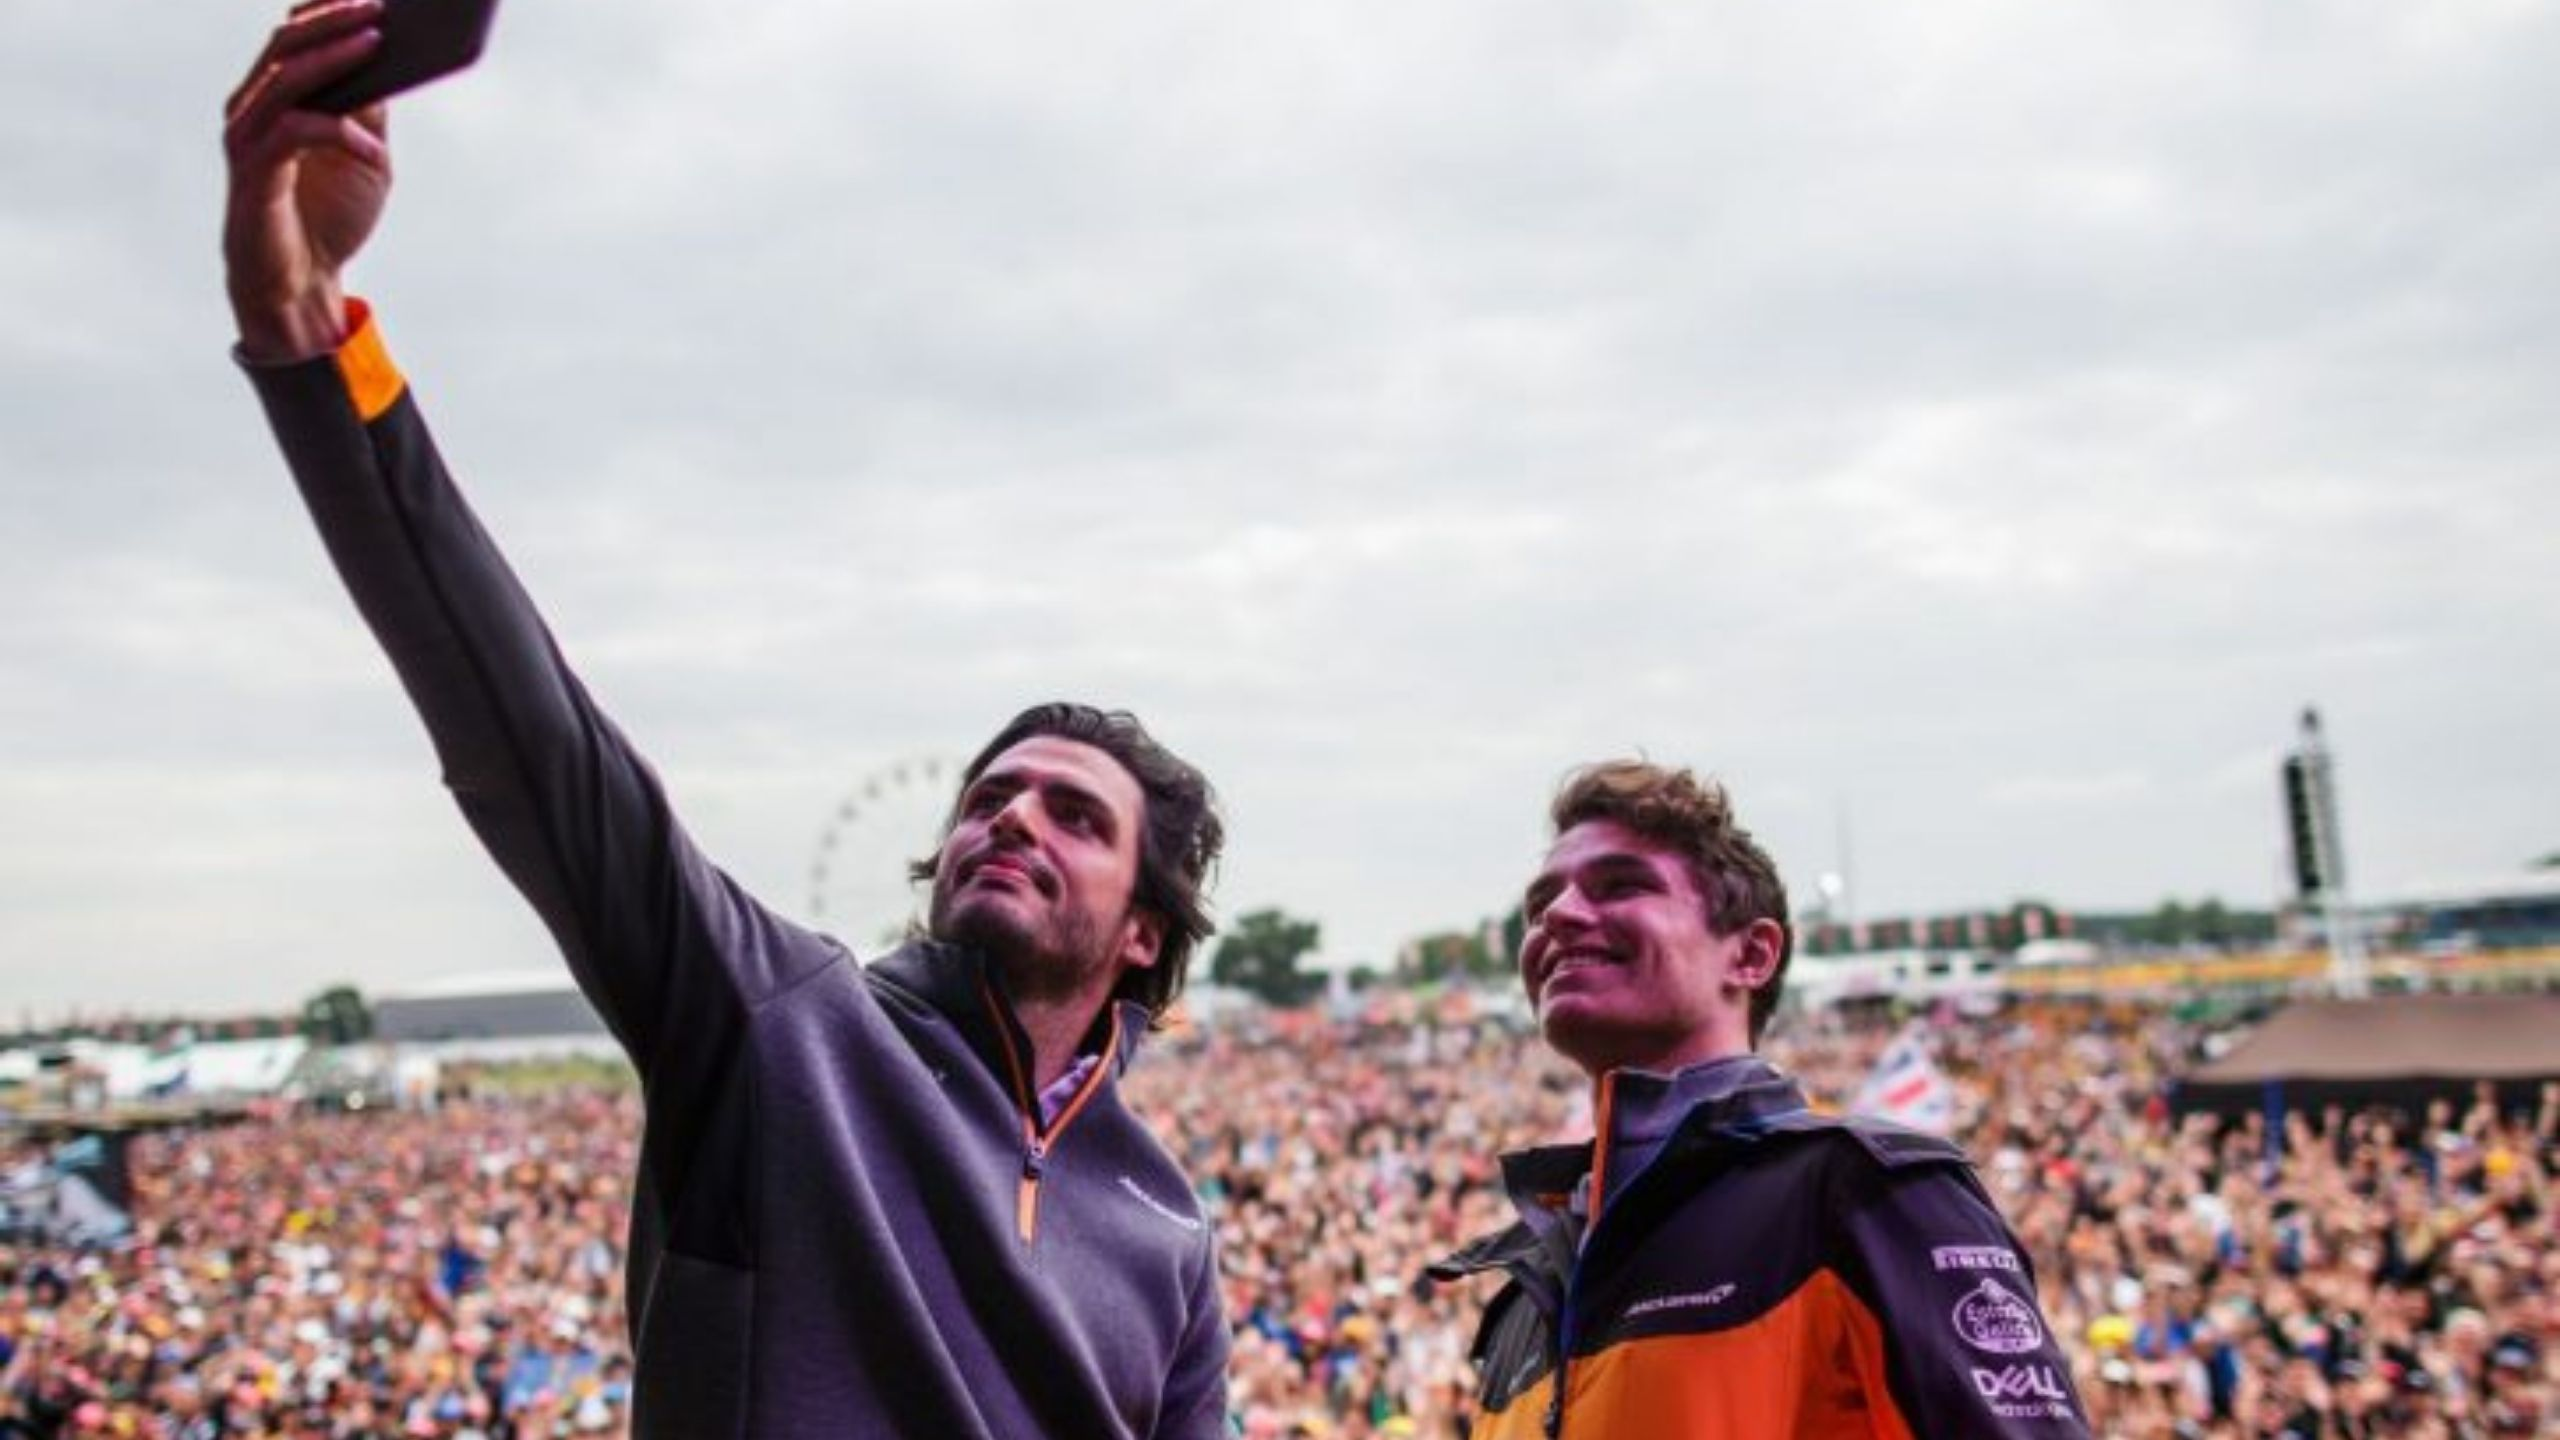 """""""Maybe we crash at race one next year!"""" - Lando Norris and Carlos Sainz commit to keep 'Carlando content' going next season"""